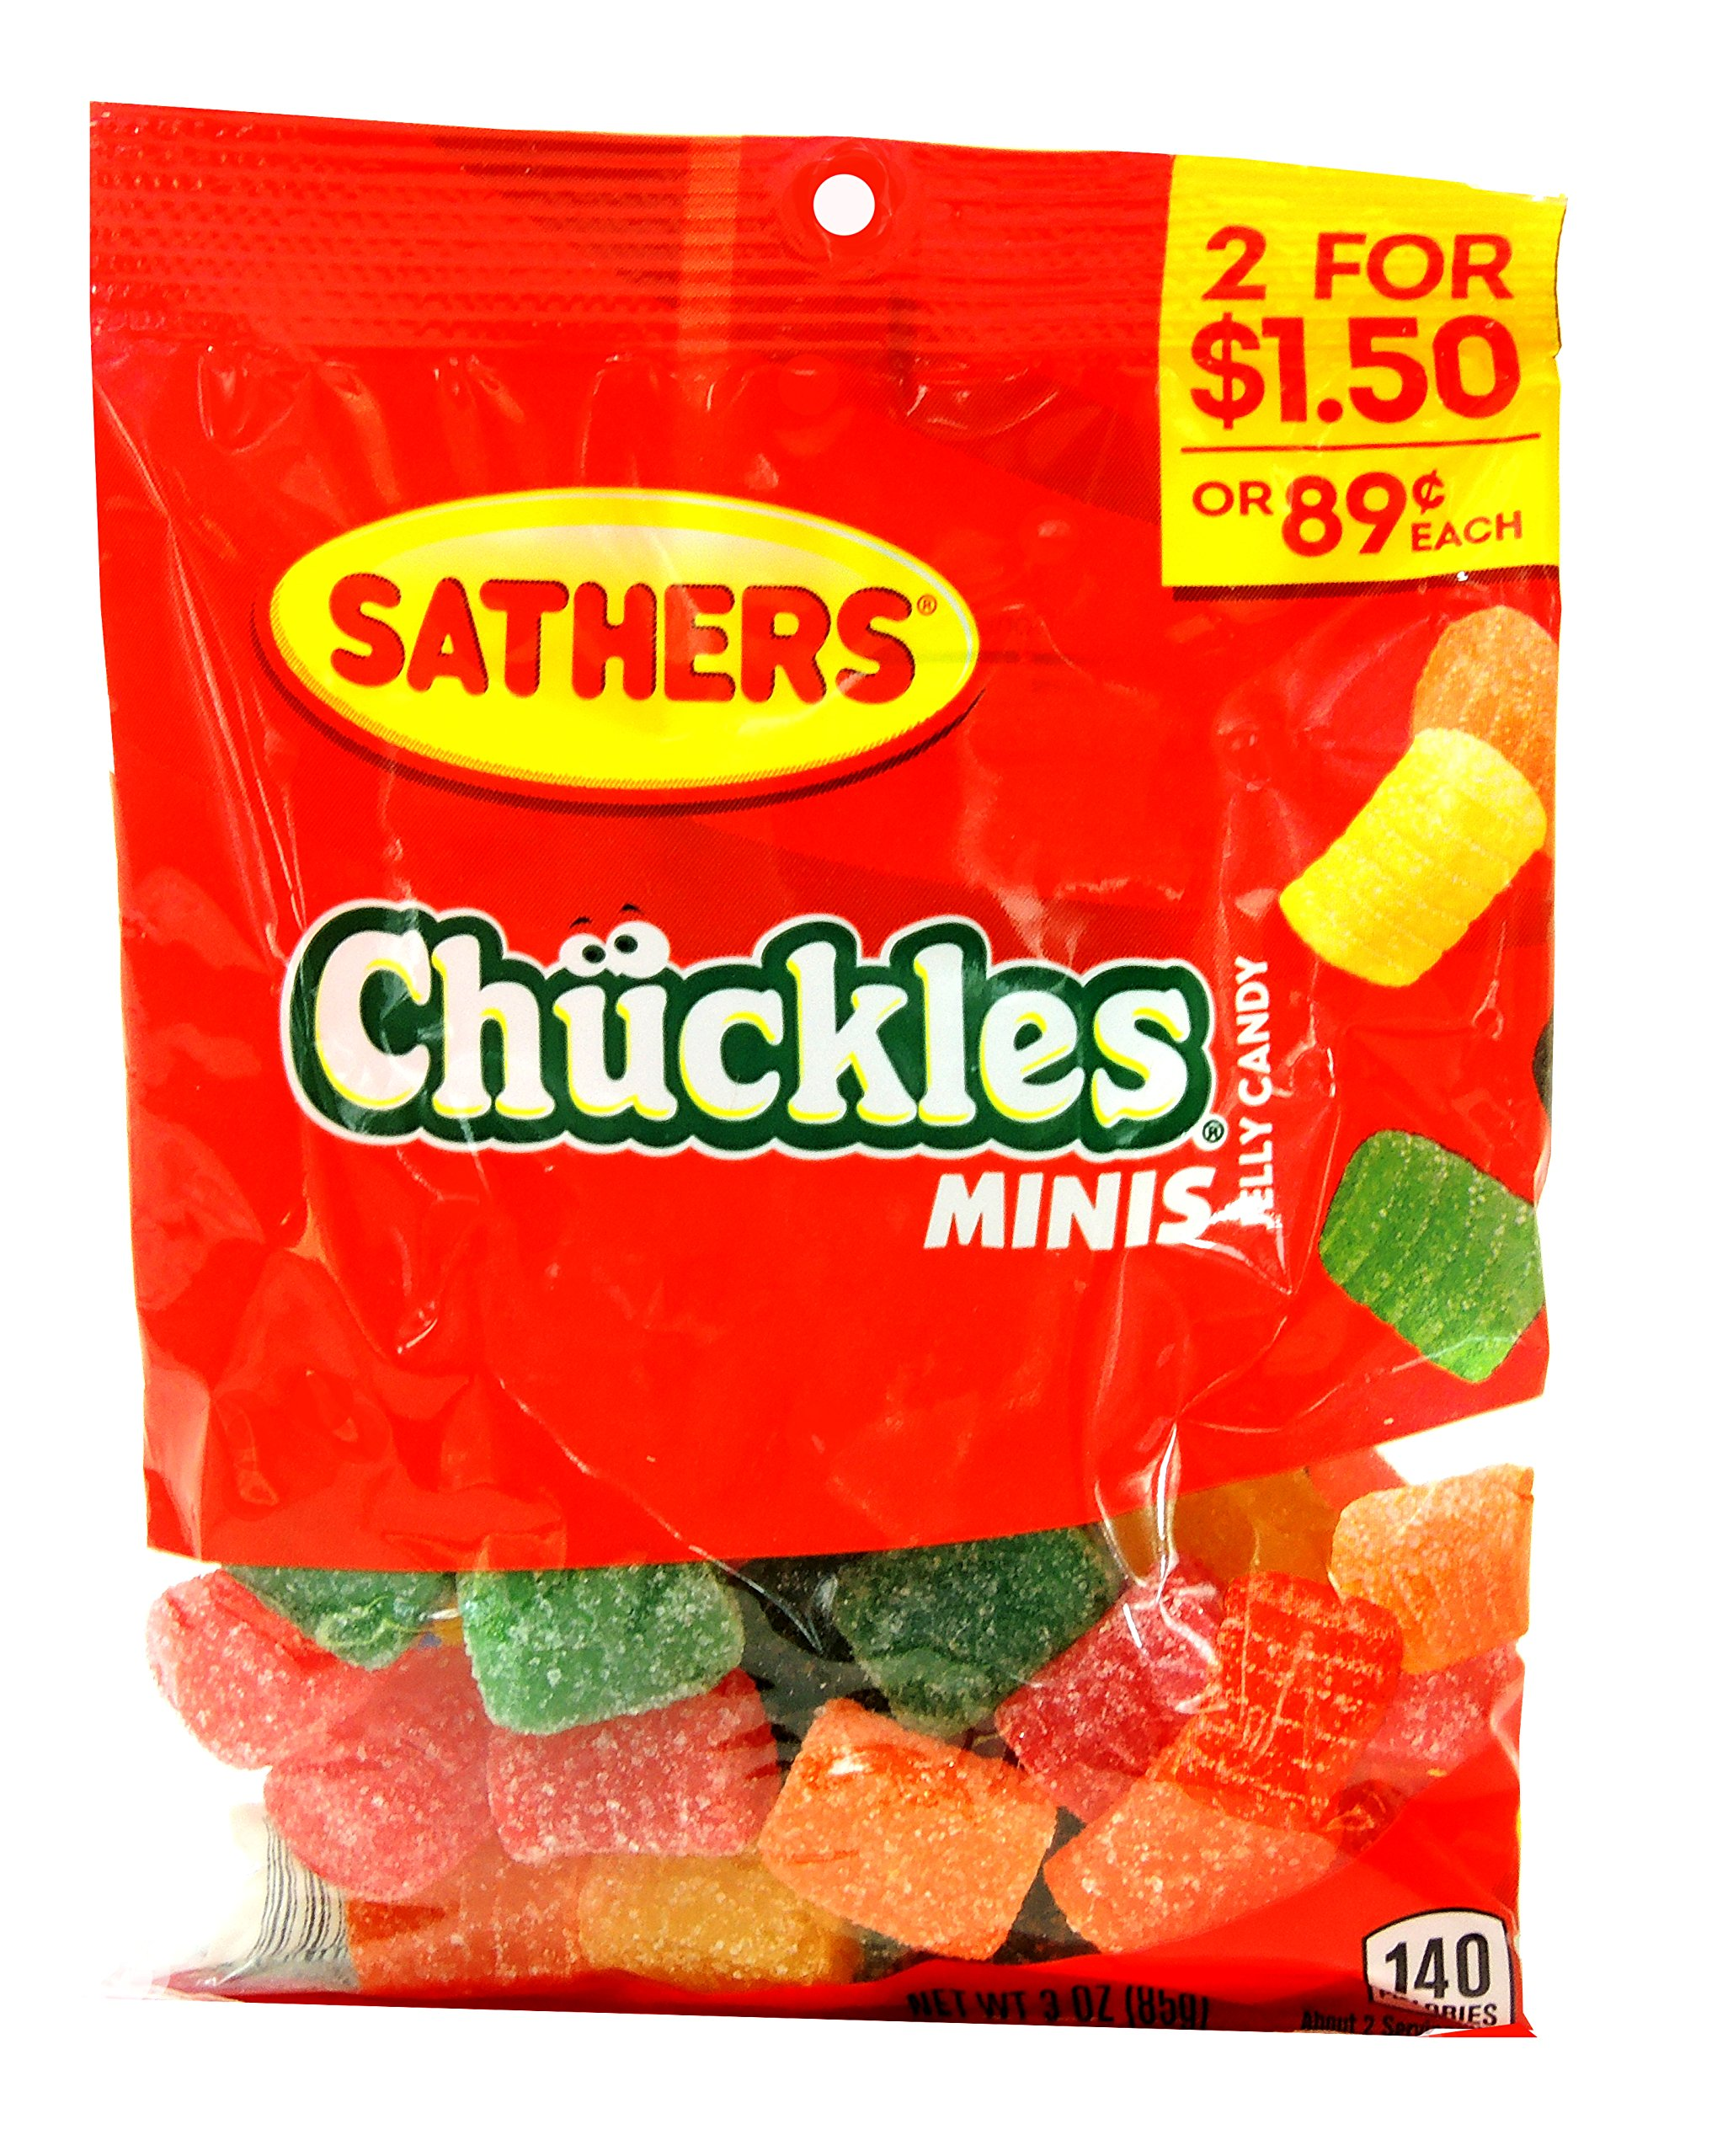 Sathers Chuckles Minis Jelly Candy 3 Oz Each (12 in a Box)